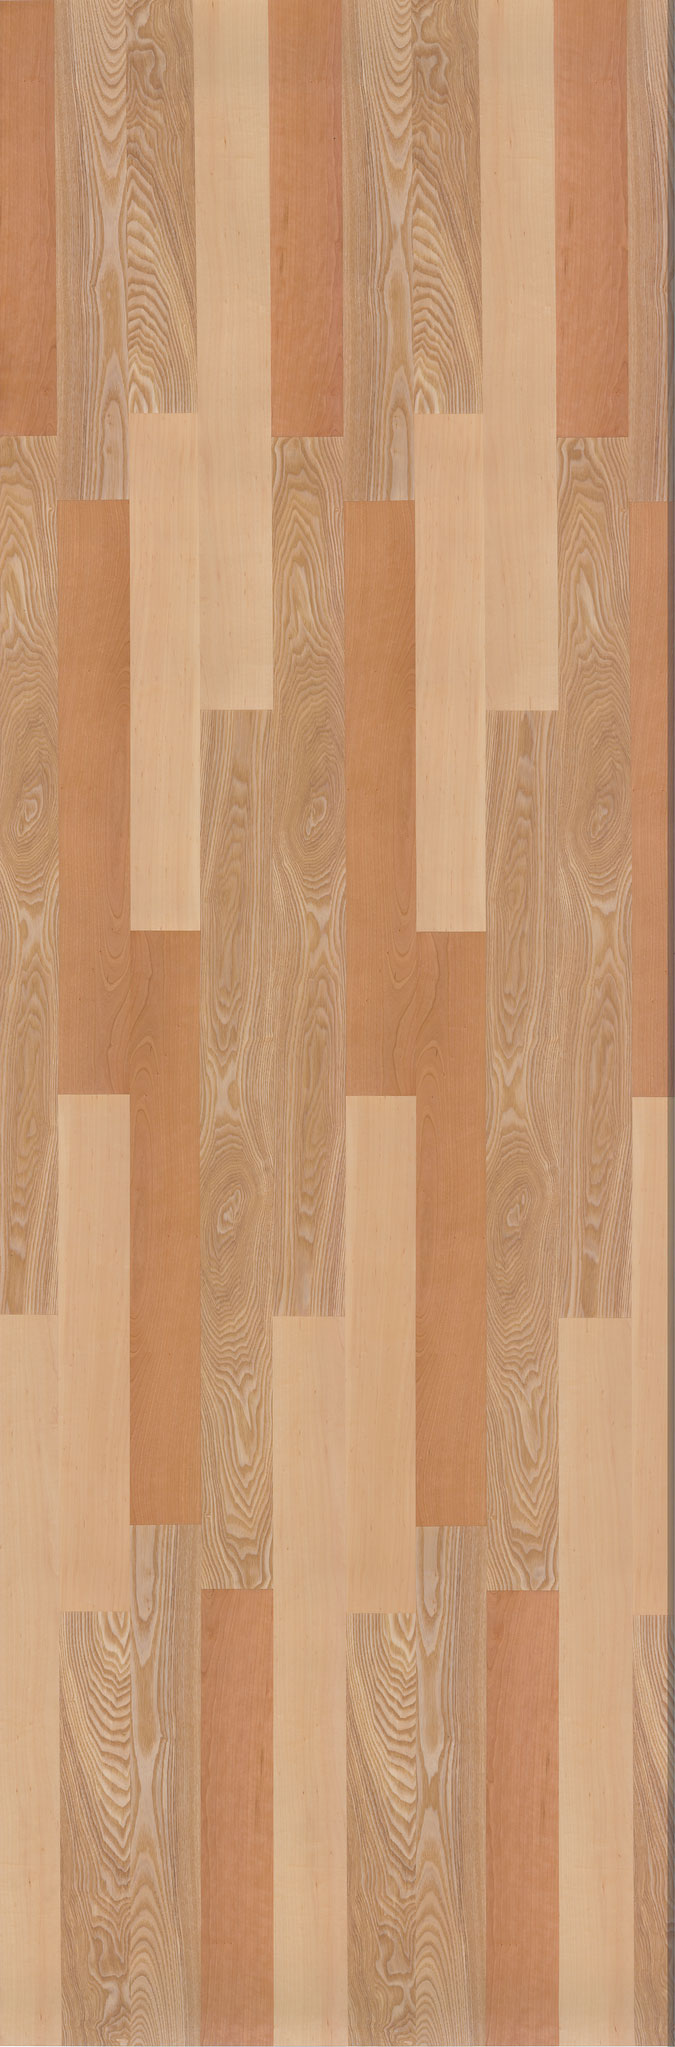 Plank-Cherry-Maple-Japanese-Ash-FC-QC